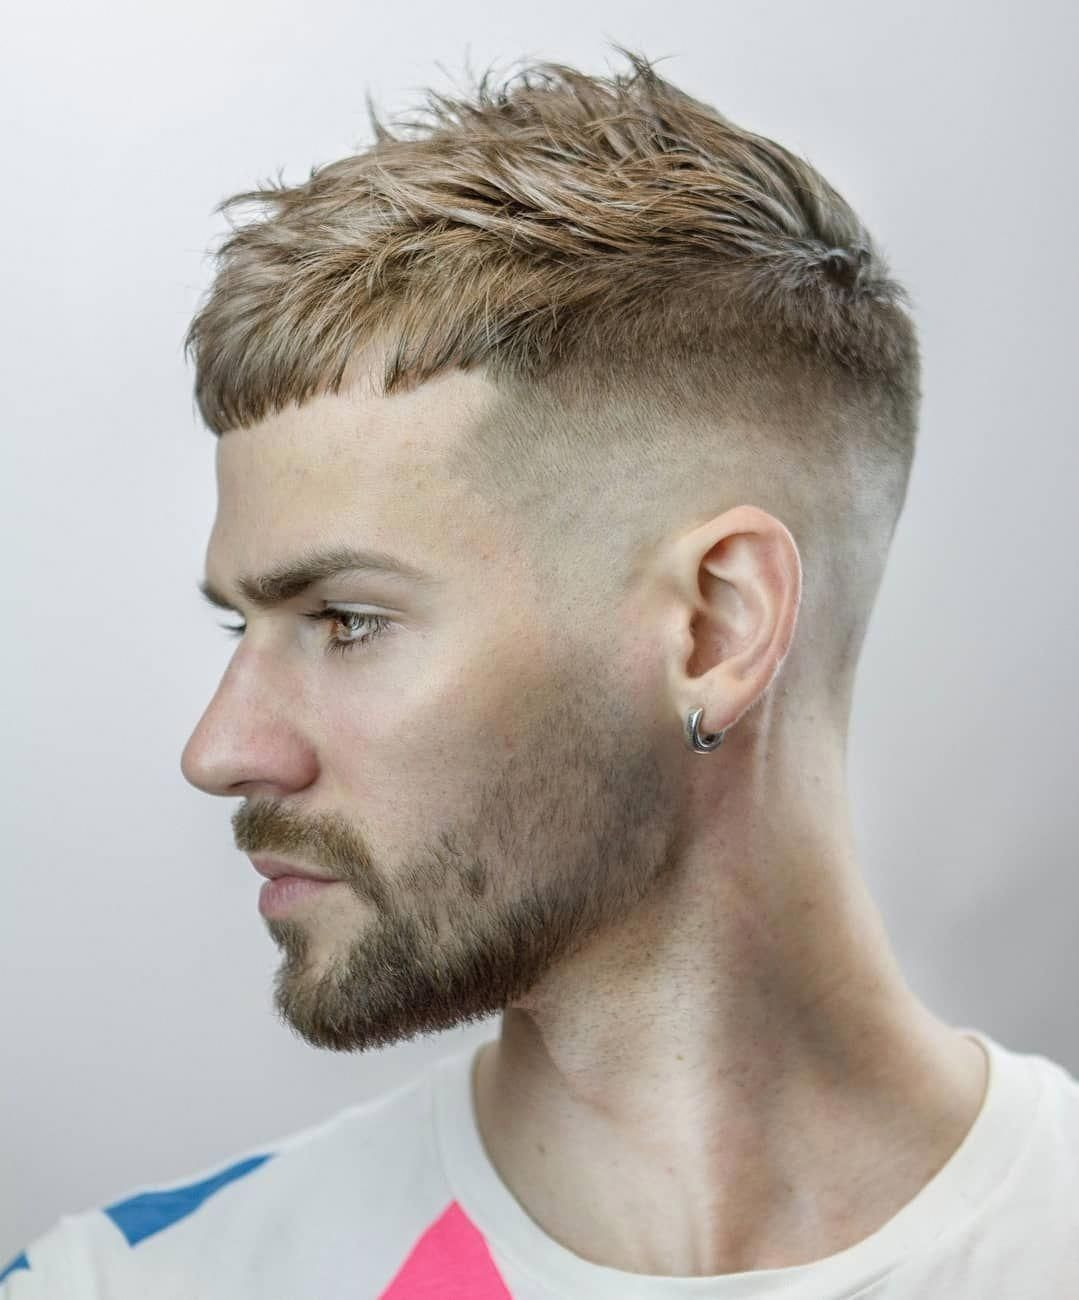 French Crop Fade 2019 Menshairstyles Haircuts For Balding Men Balding Mens Hairstyles Mens Hairstyles Short